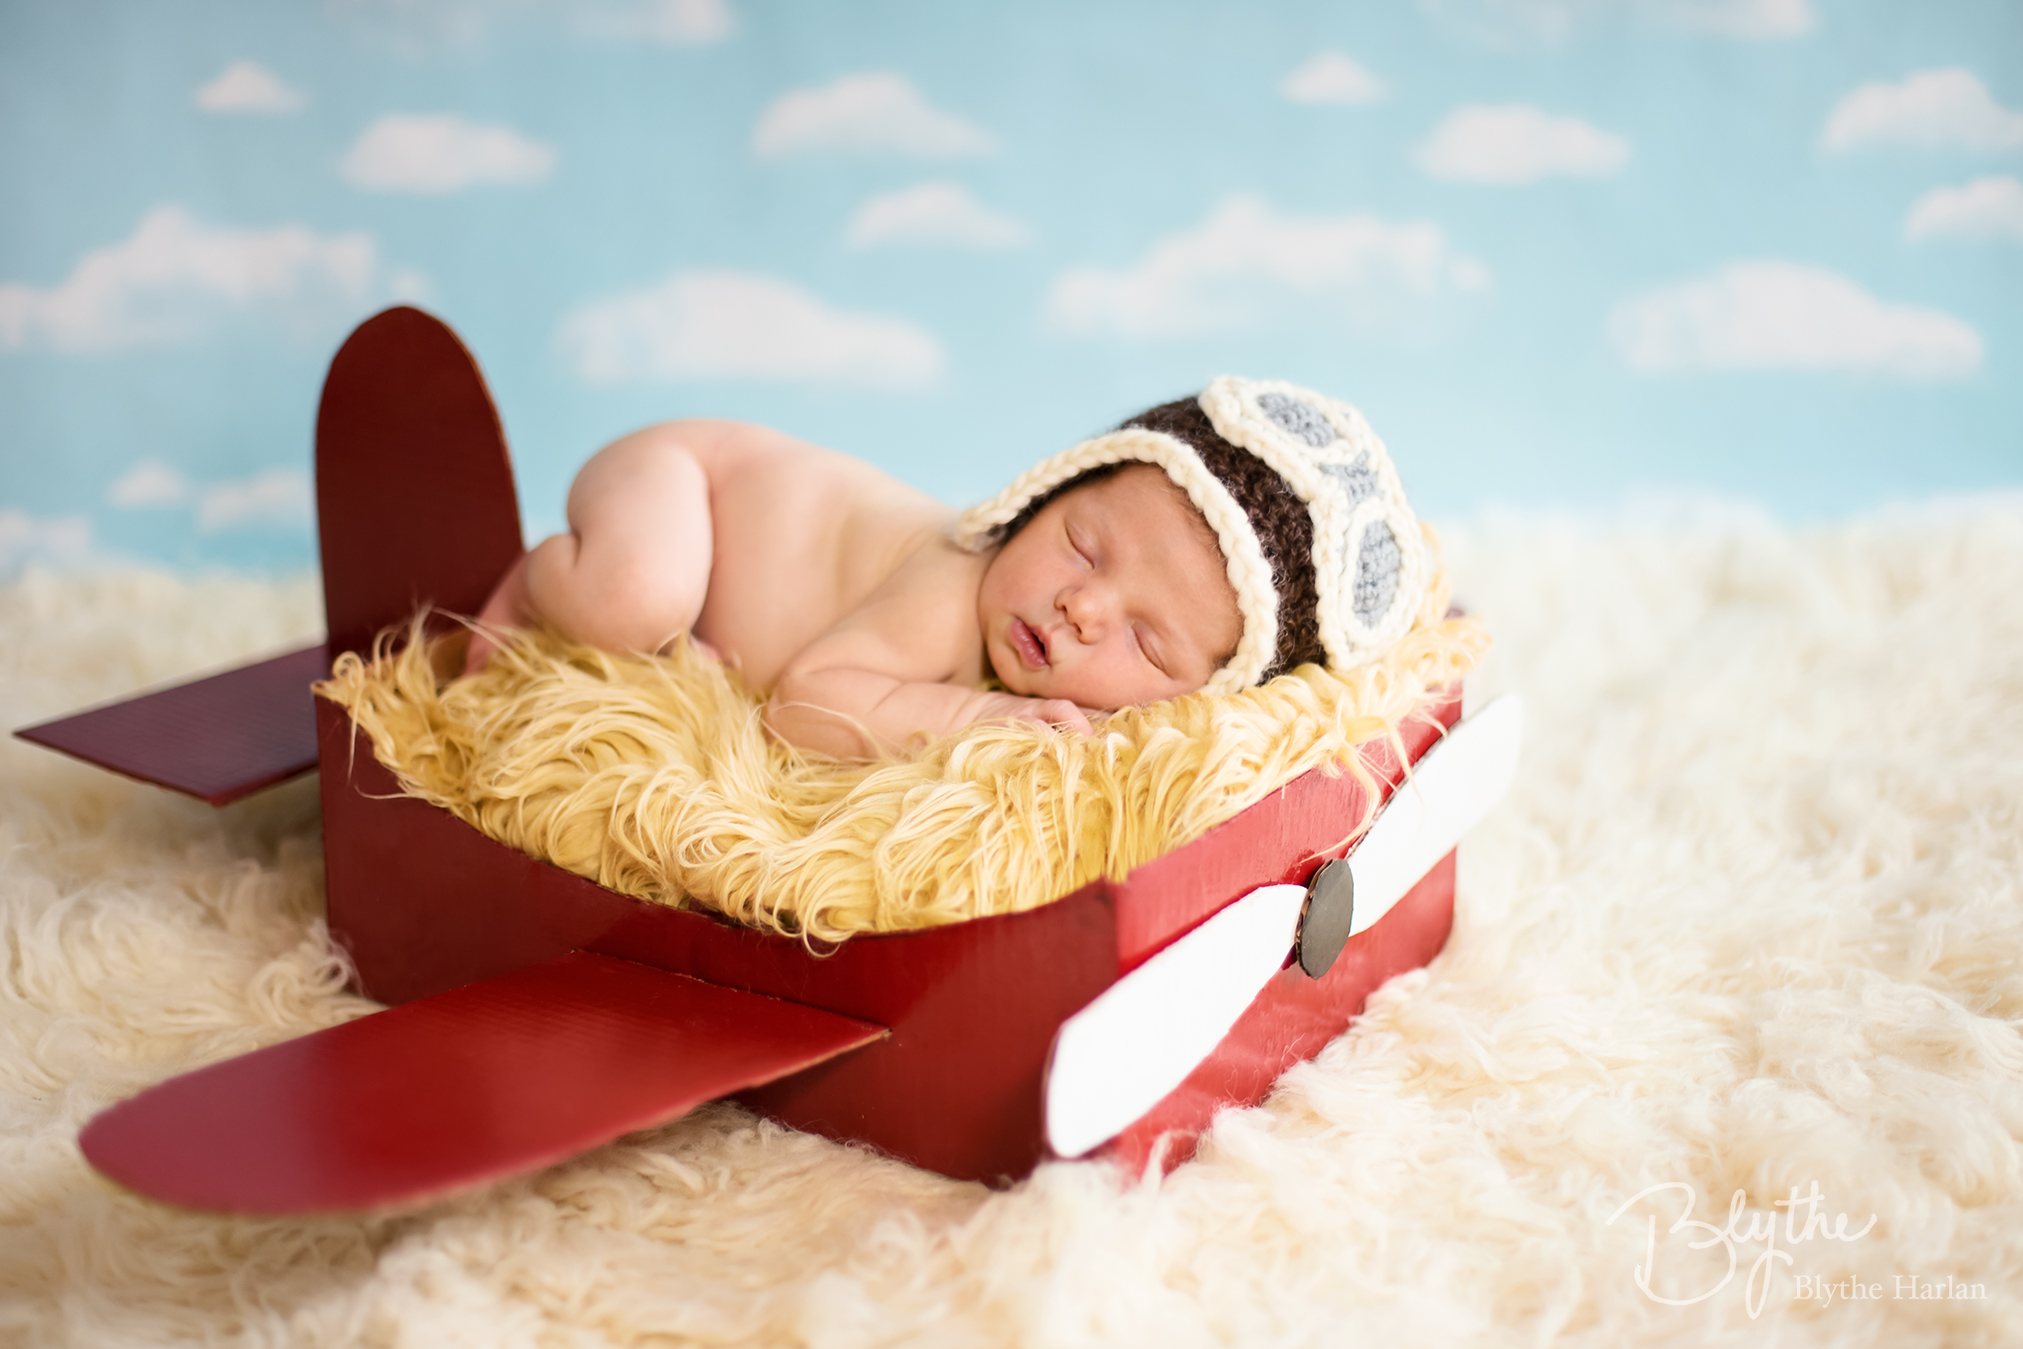 miniIMG_1431p1 Making a Newborn Prop Photo Pop Blueprints Guest Bloggers Uncategorized